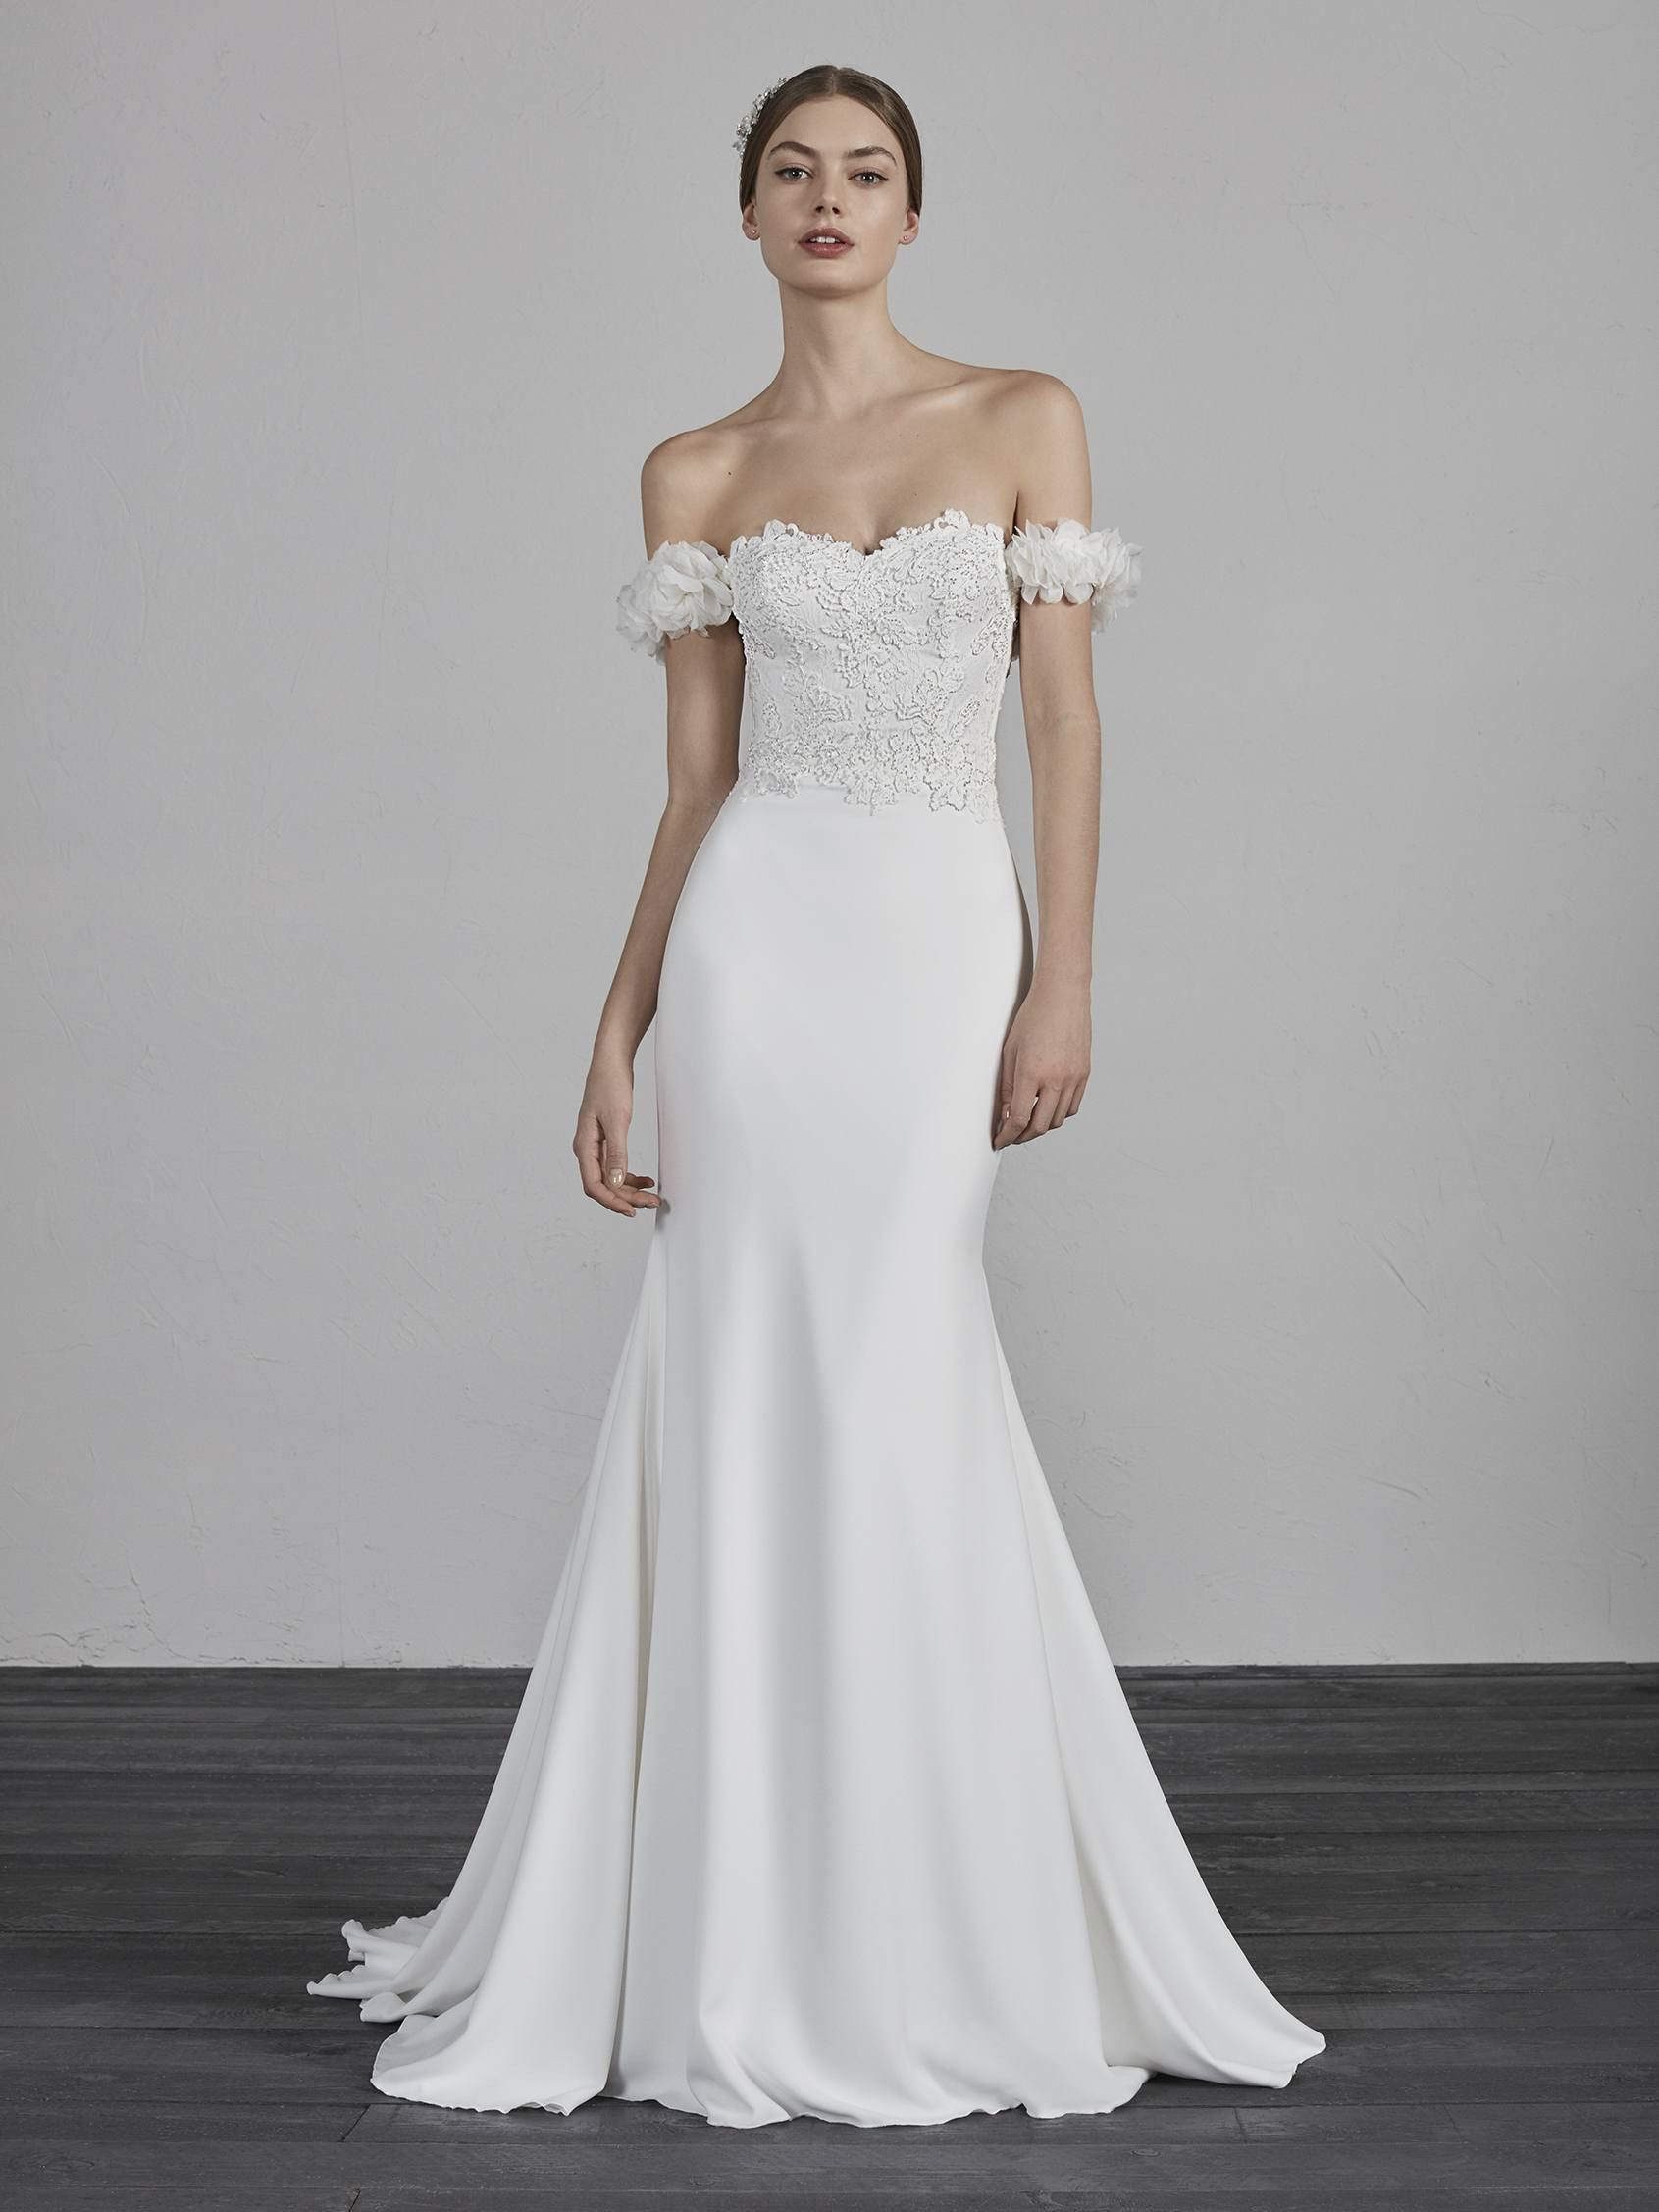 Try it on at ellieus bridal boutique alexandria va u pronovias